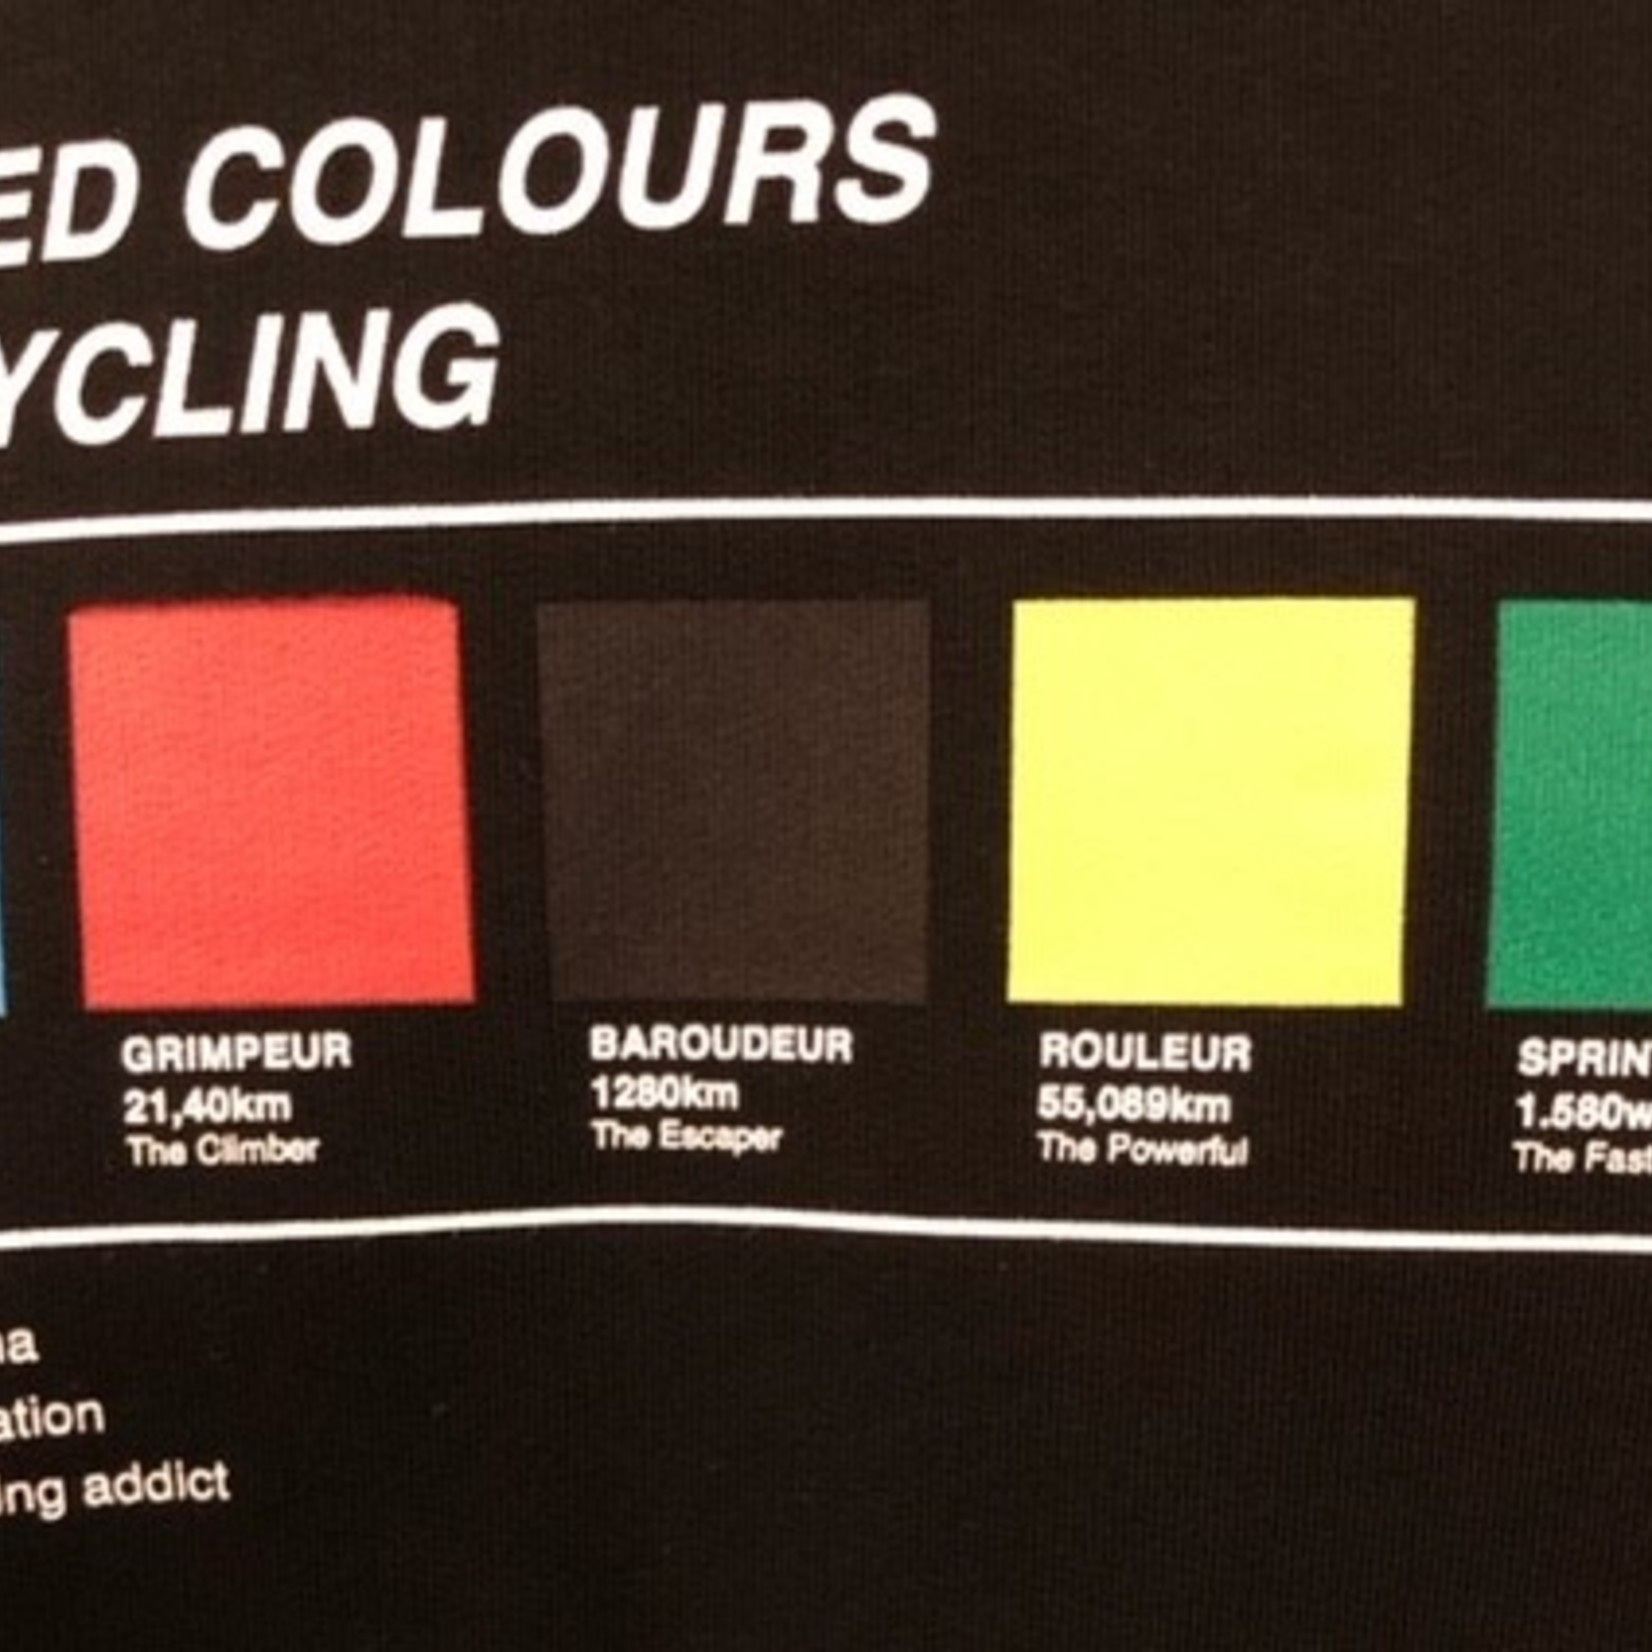 Sweater United colours of cycling